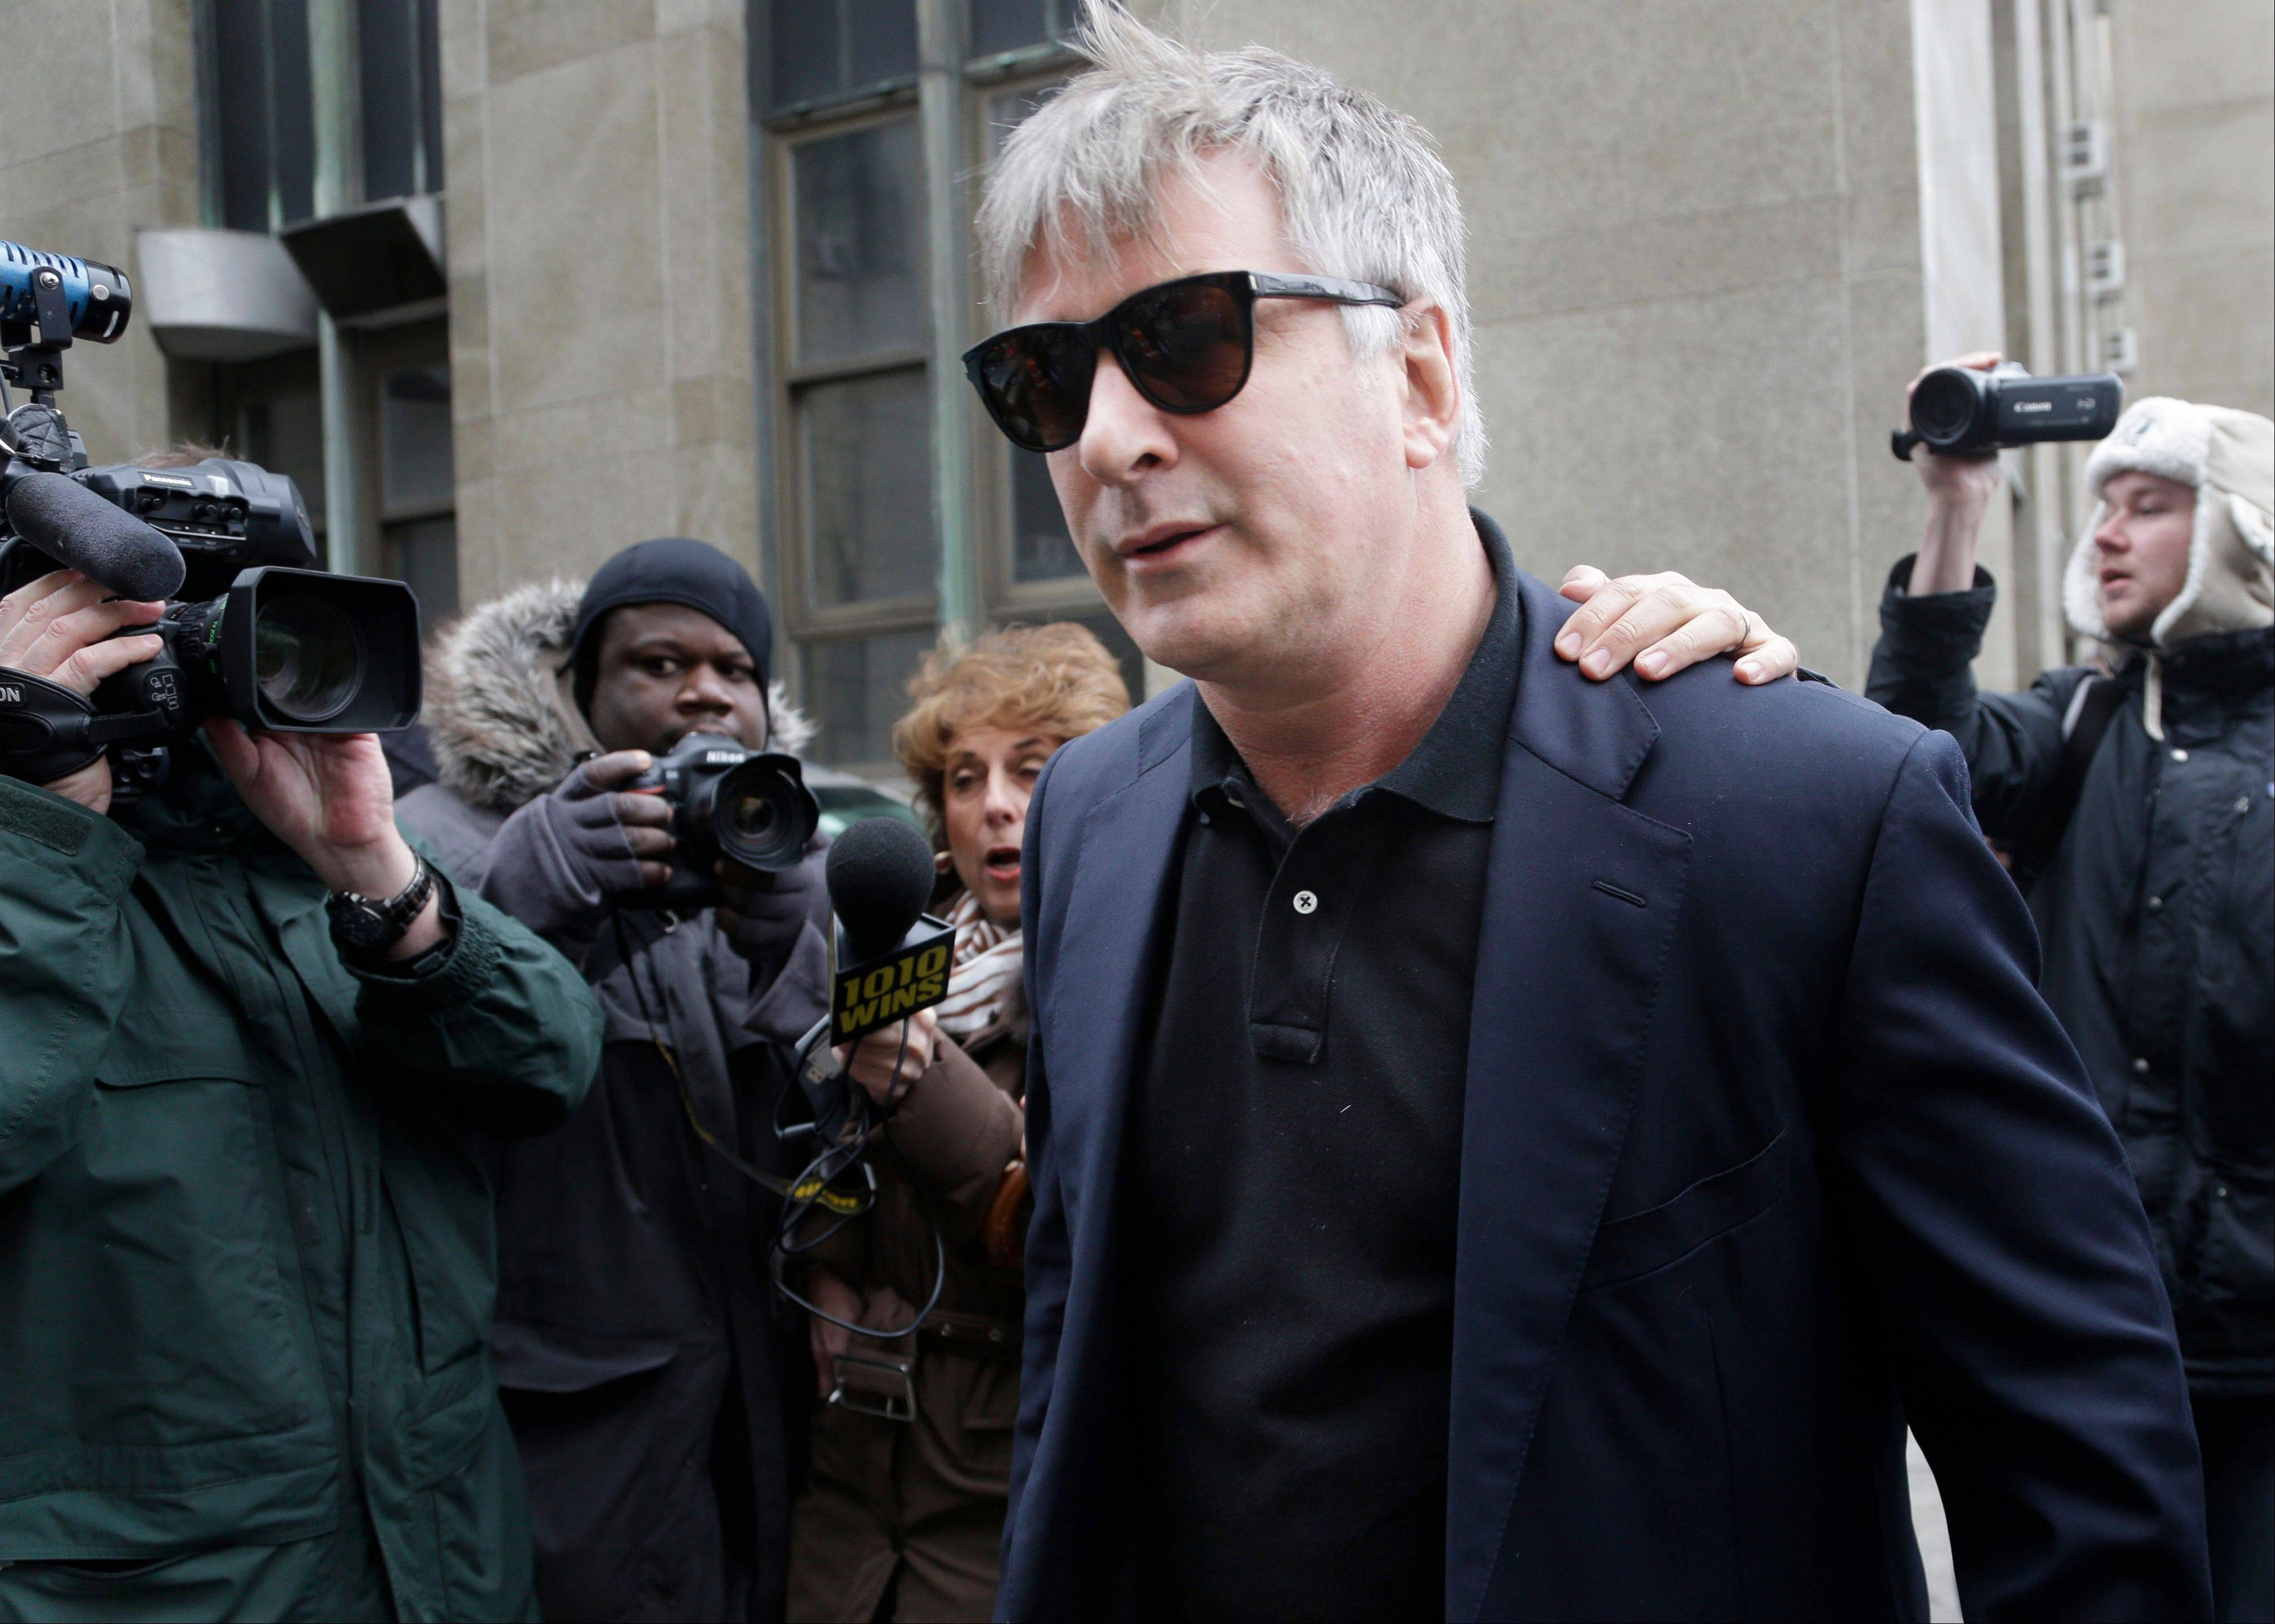 MSNBC and Alec Baldwin say they are ending the actor�s talk show, which was suspended for two weeks after the actor used an anti-gay slur against a photographer in a New York City street.